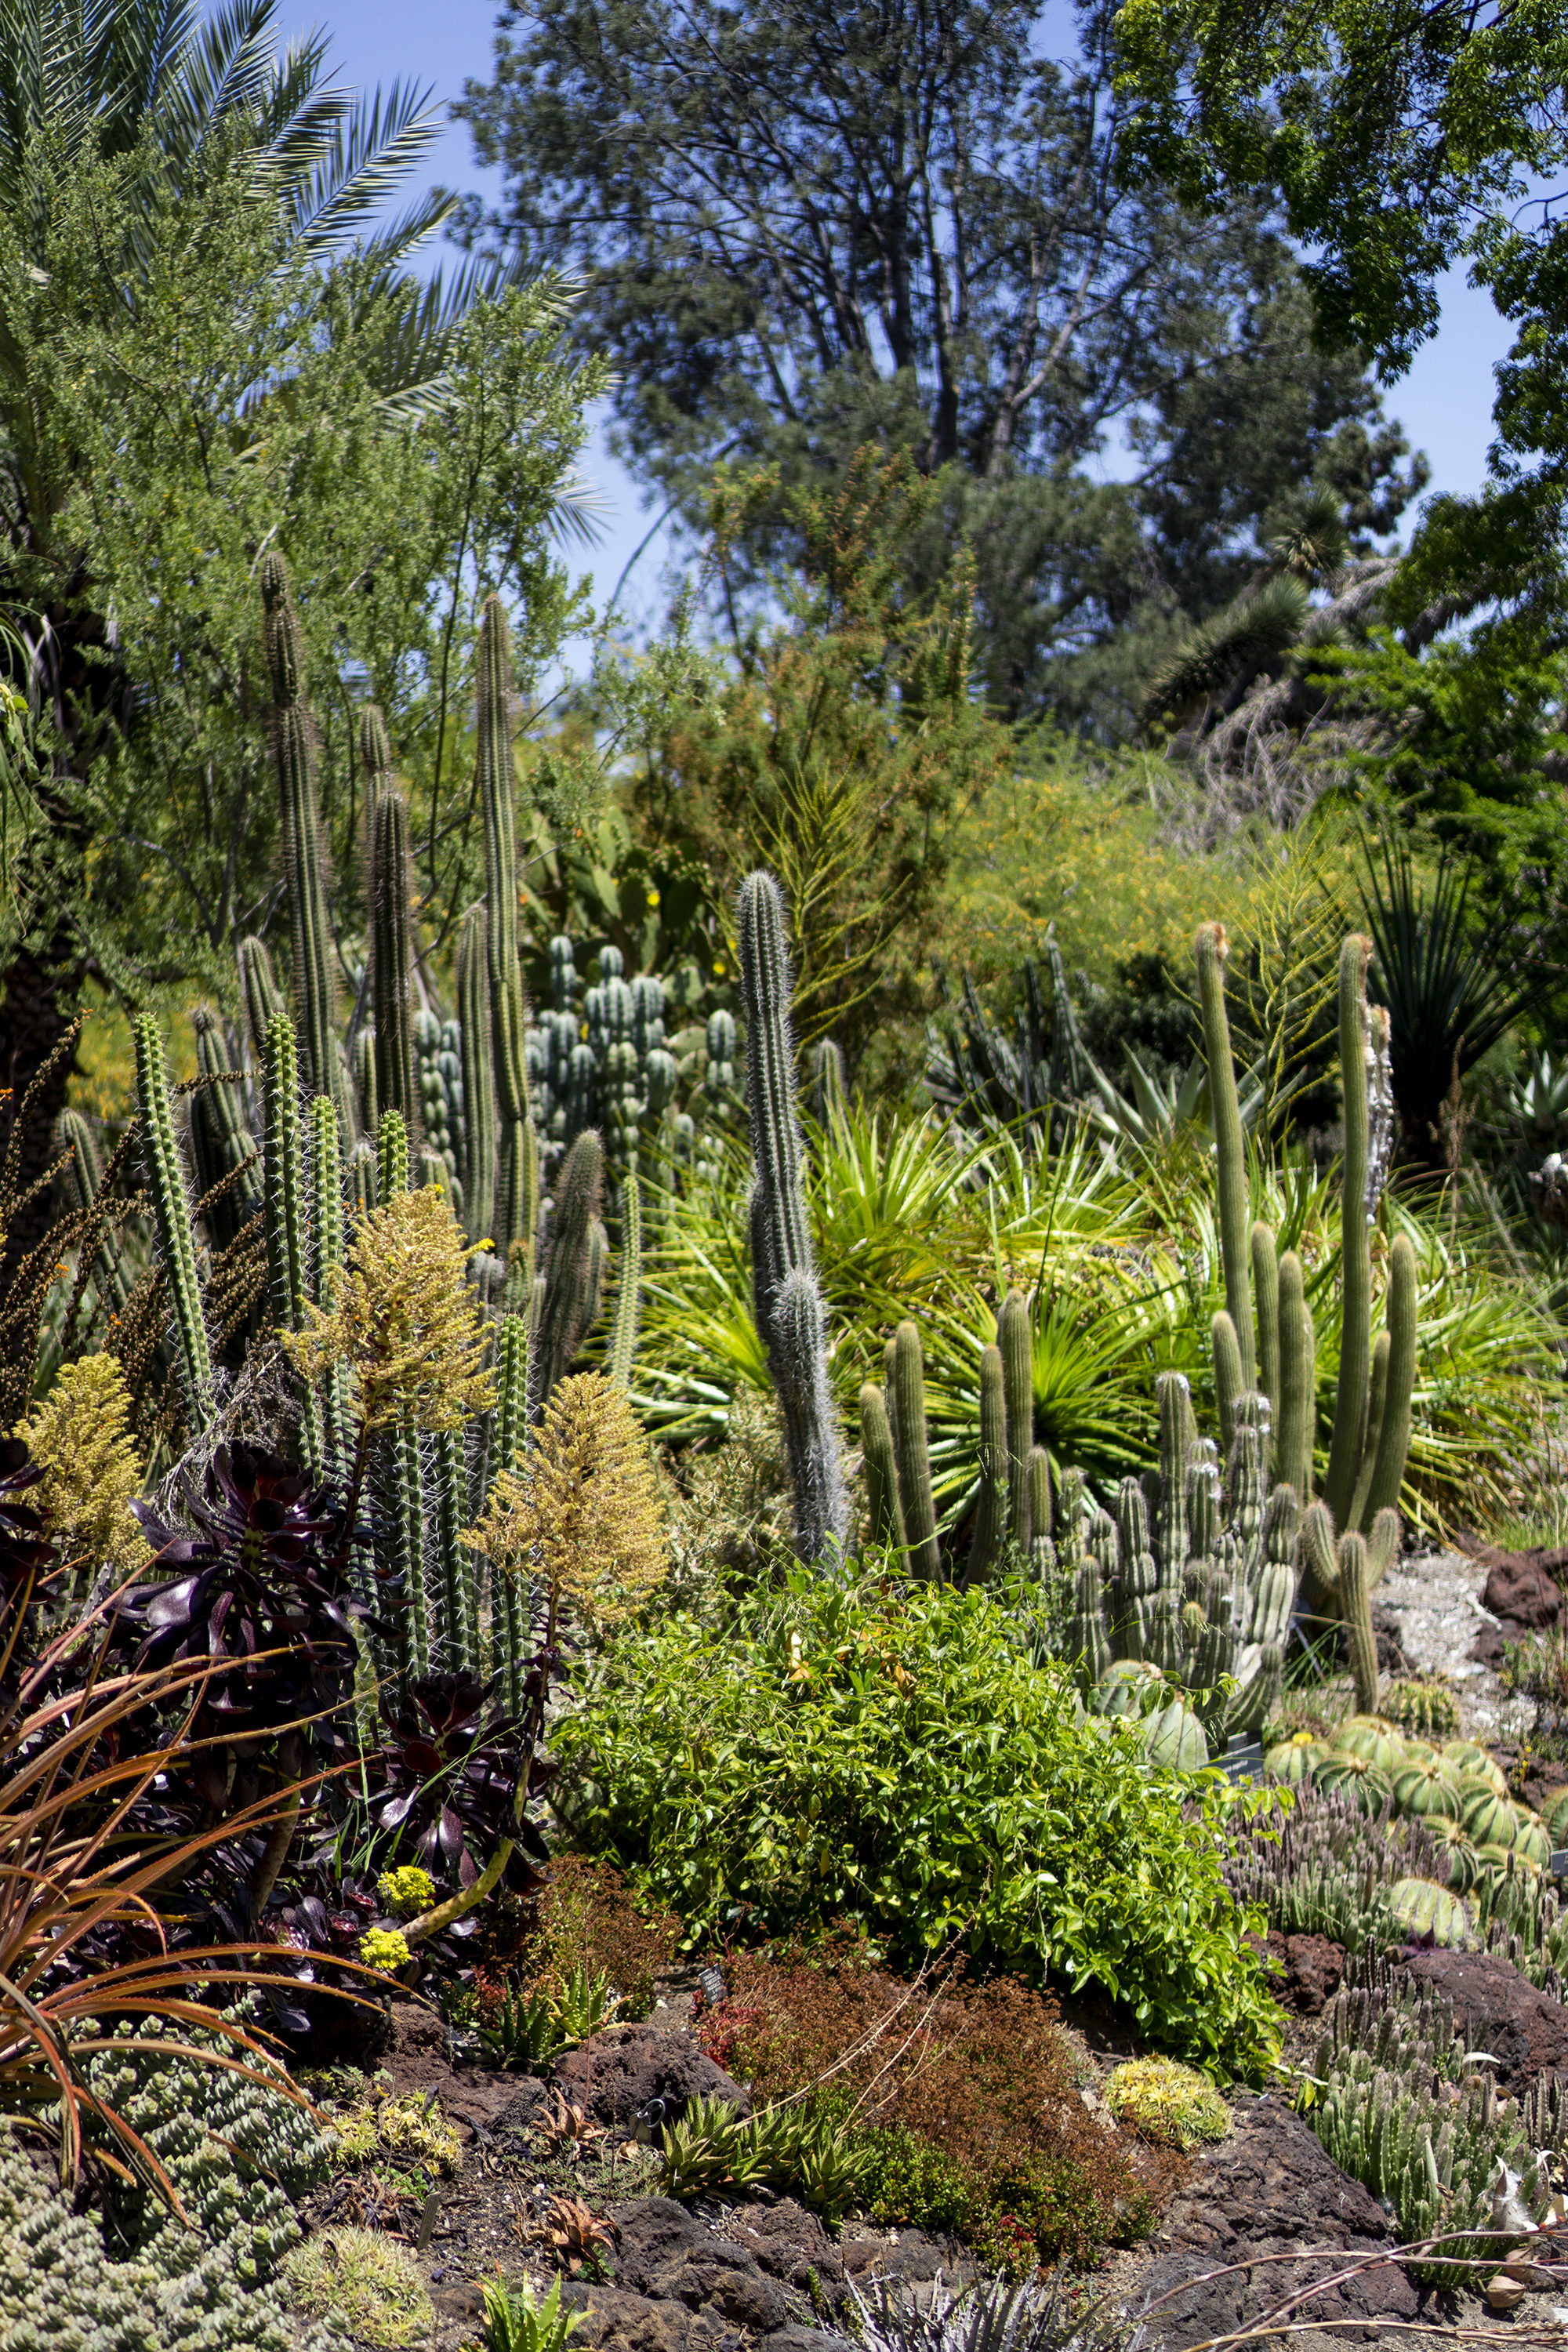 Desert Garden, Huntington Library, San Marino CA / Darker than Green